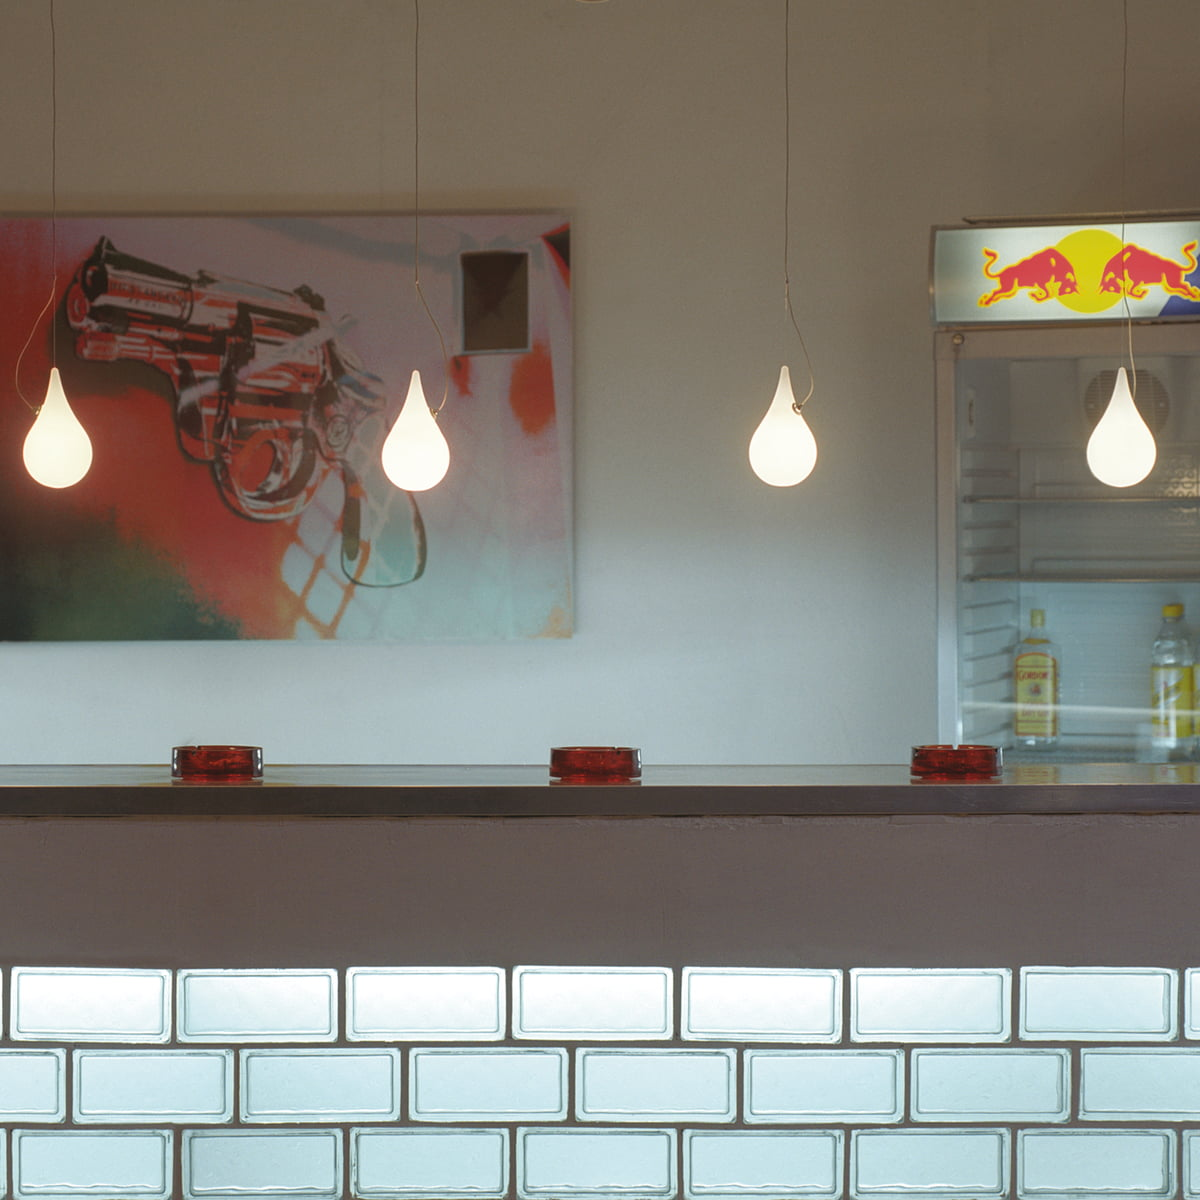 The Drop_2xs LED Pendant Lamp by Next Home